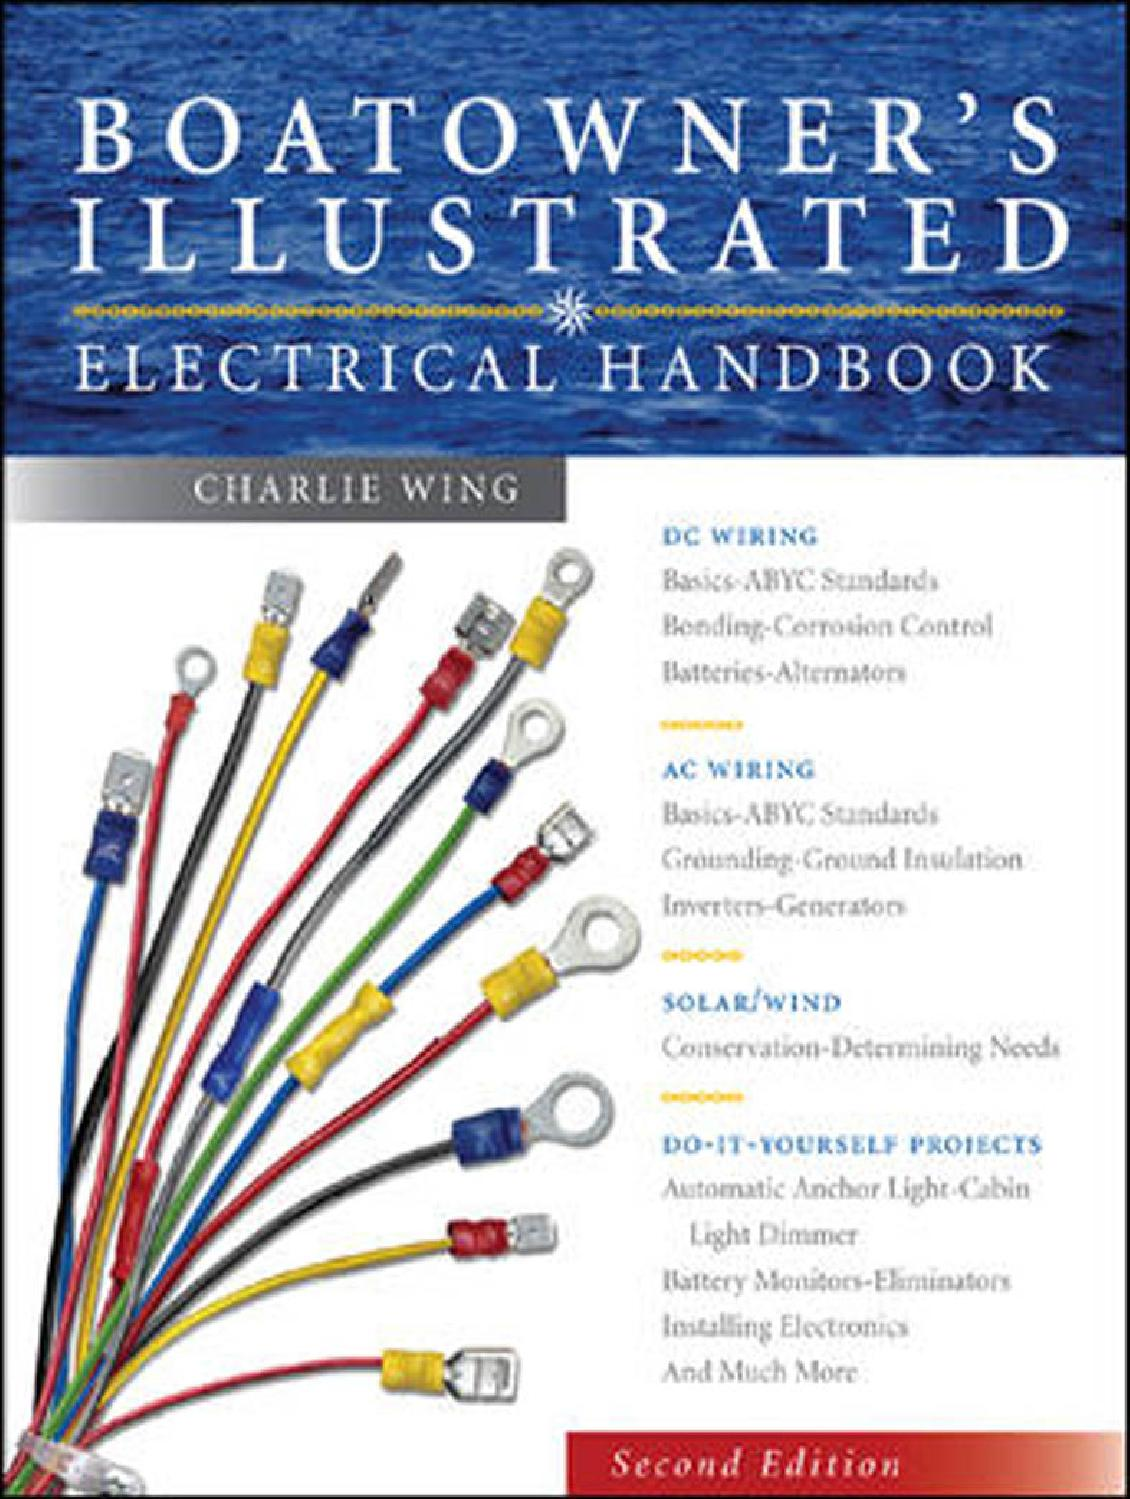 Boatowners Illustrated Electrical Handbook By Tera Anto Issuu Far West Cathodic Rectifier Wiring Diagram